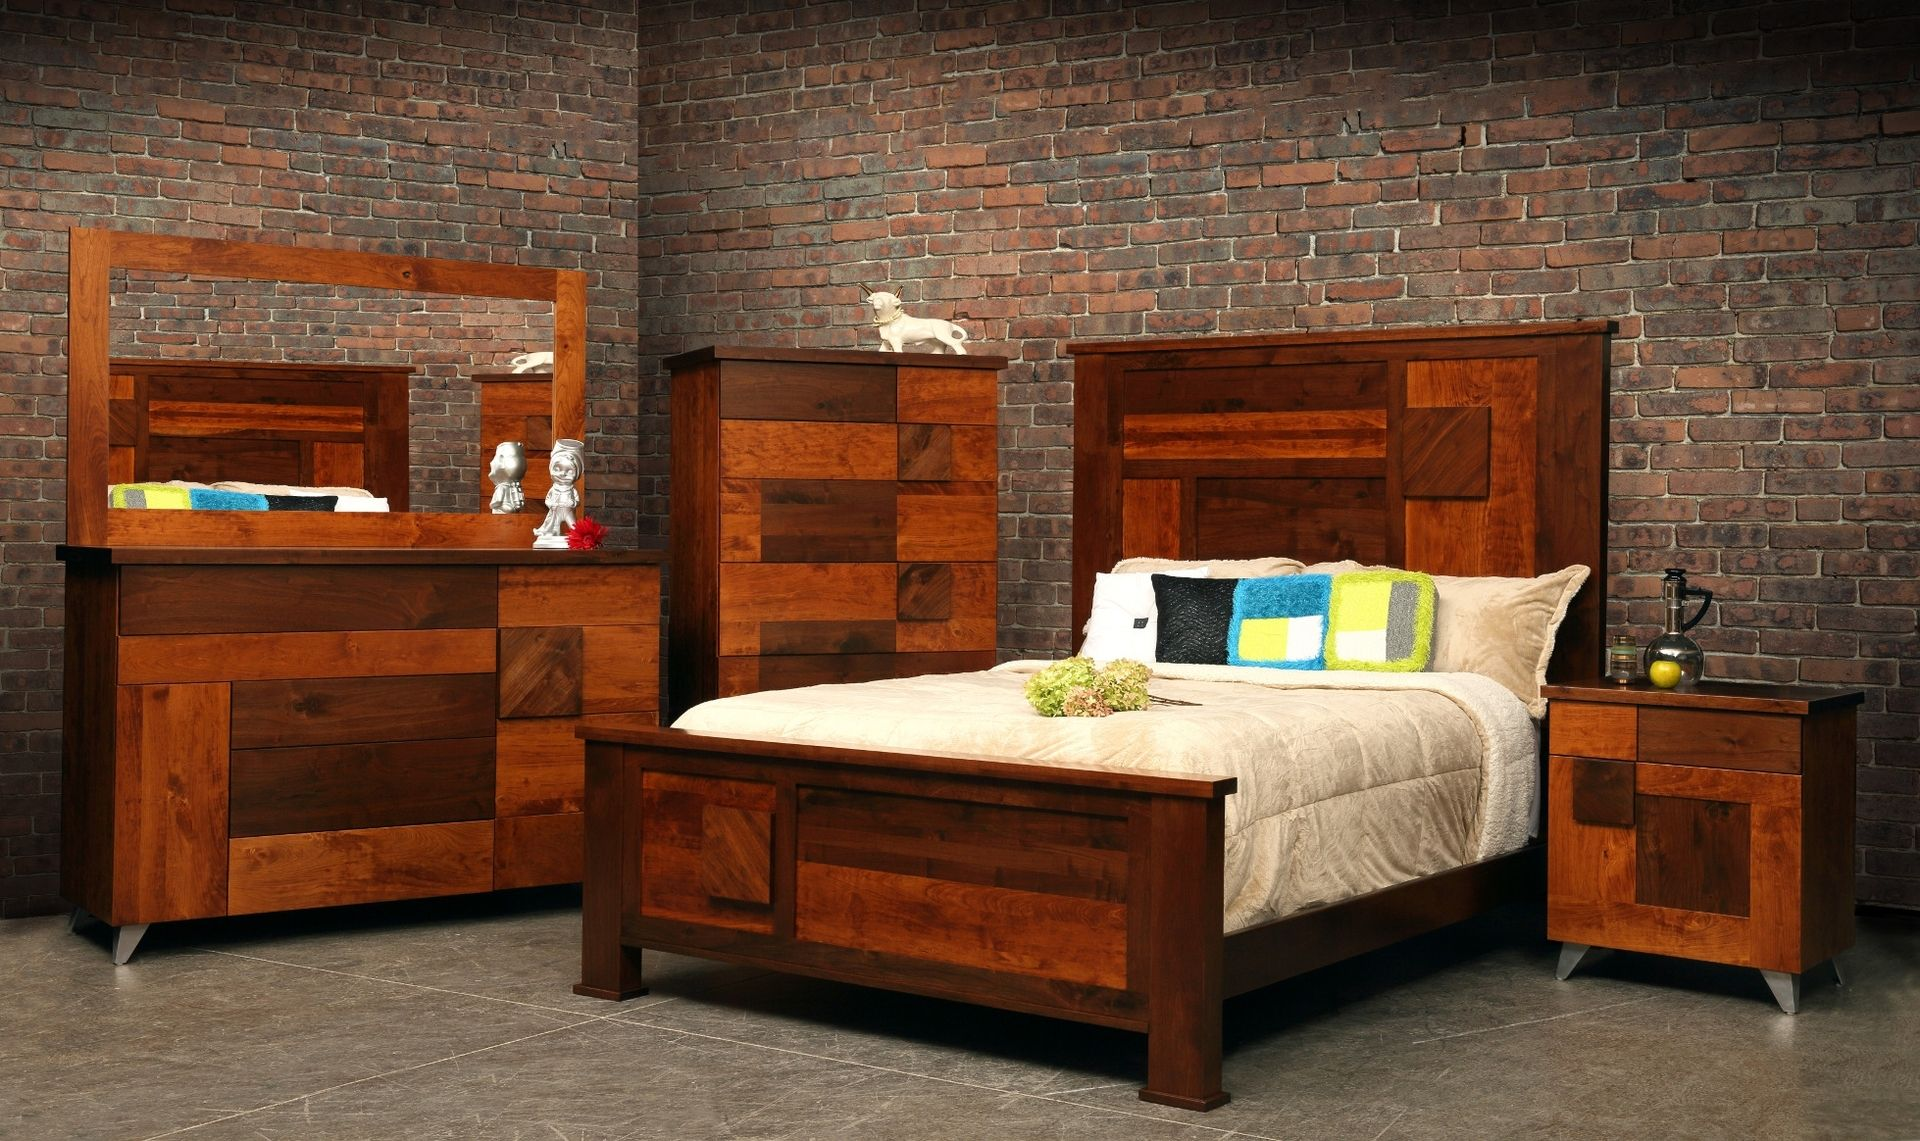 Custom made arial fields modern walnut cherry bedroom set bed nightstand dresser